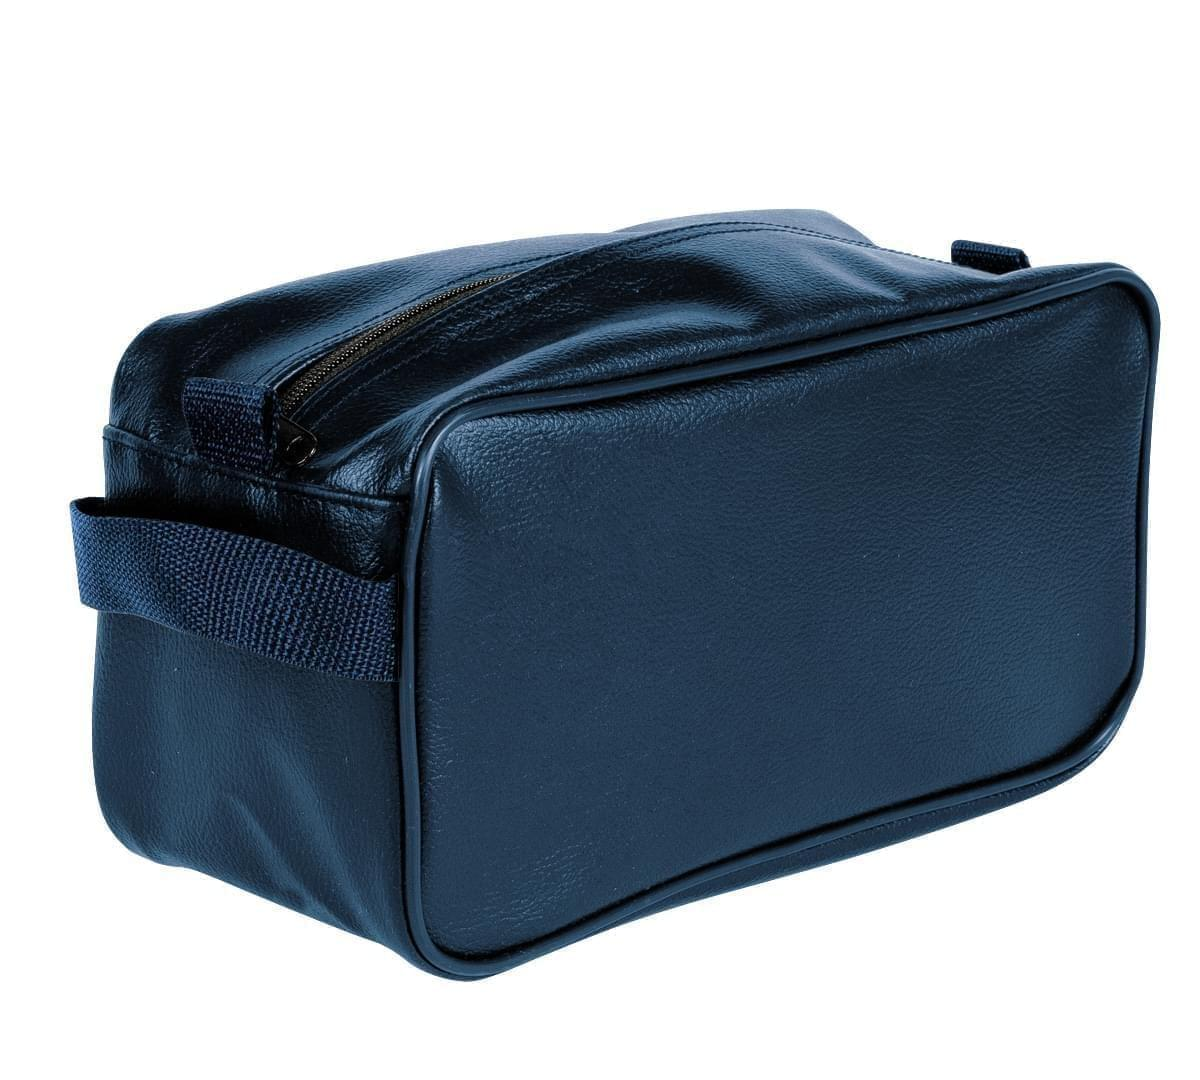 USA Made Cosmetic & Toiletry Cases, Navy-Navy, 3000996-AWZ